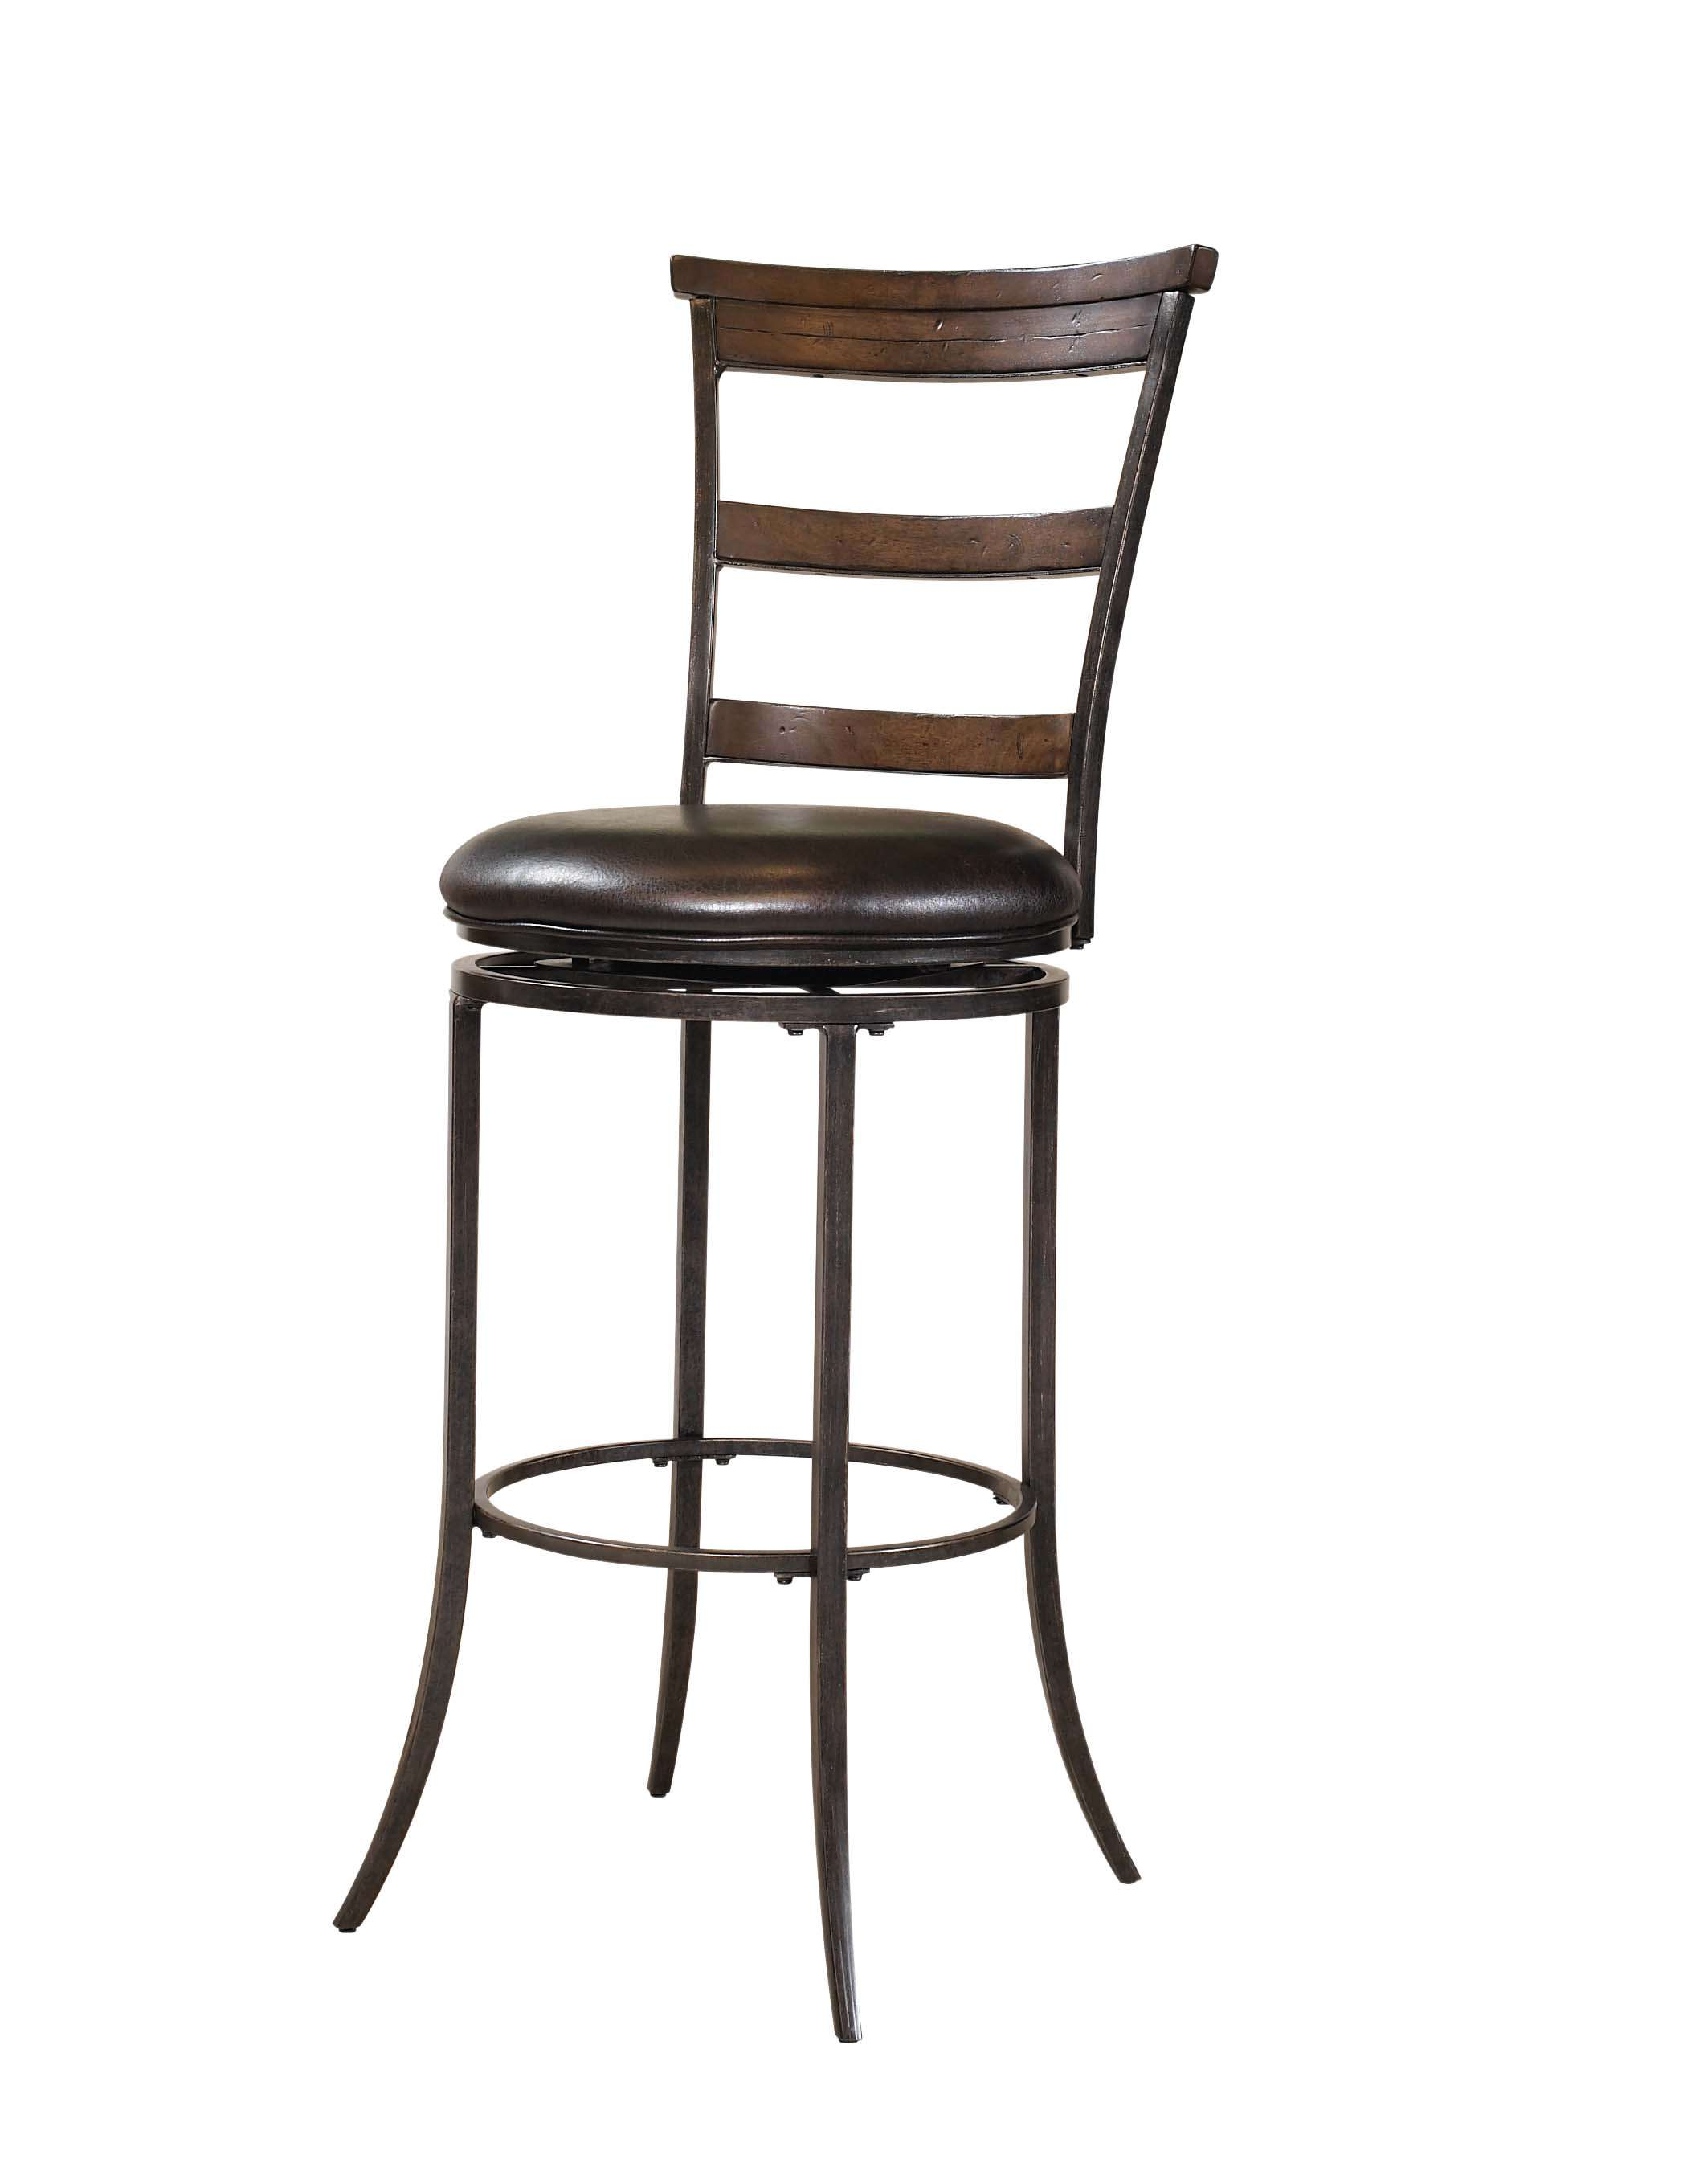 Cameron Charcoal Gray & Chestnut Brown Swivel Ladder Back Counter Stool